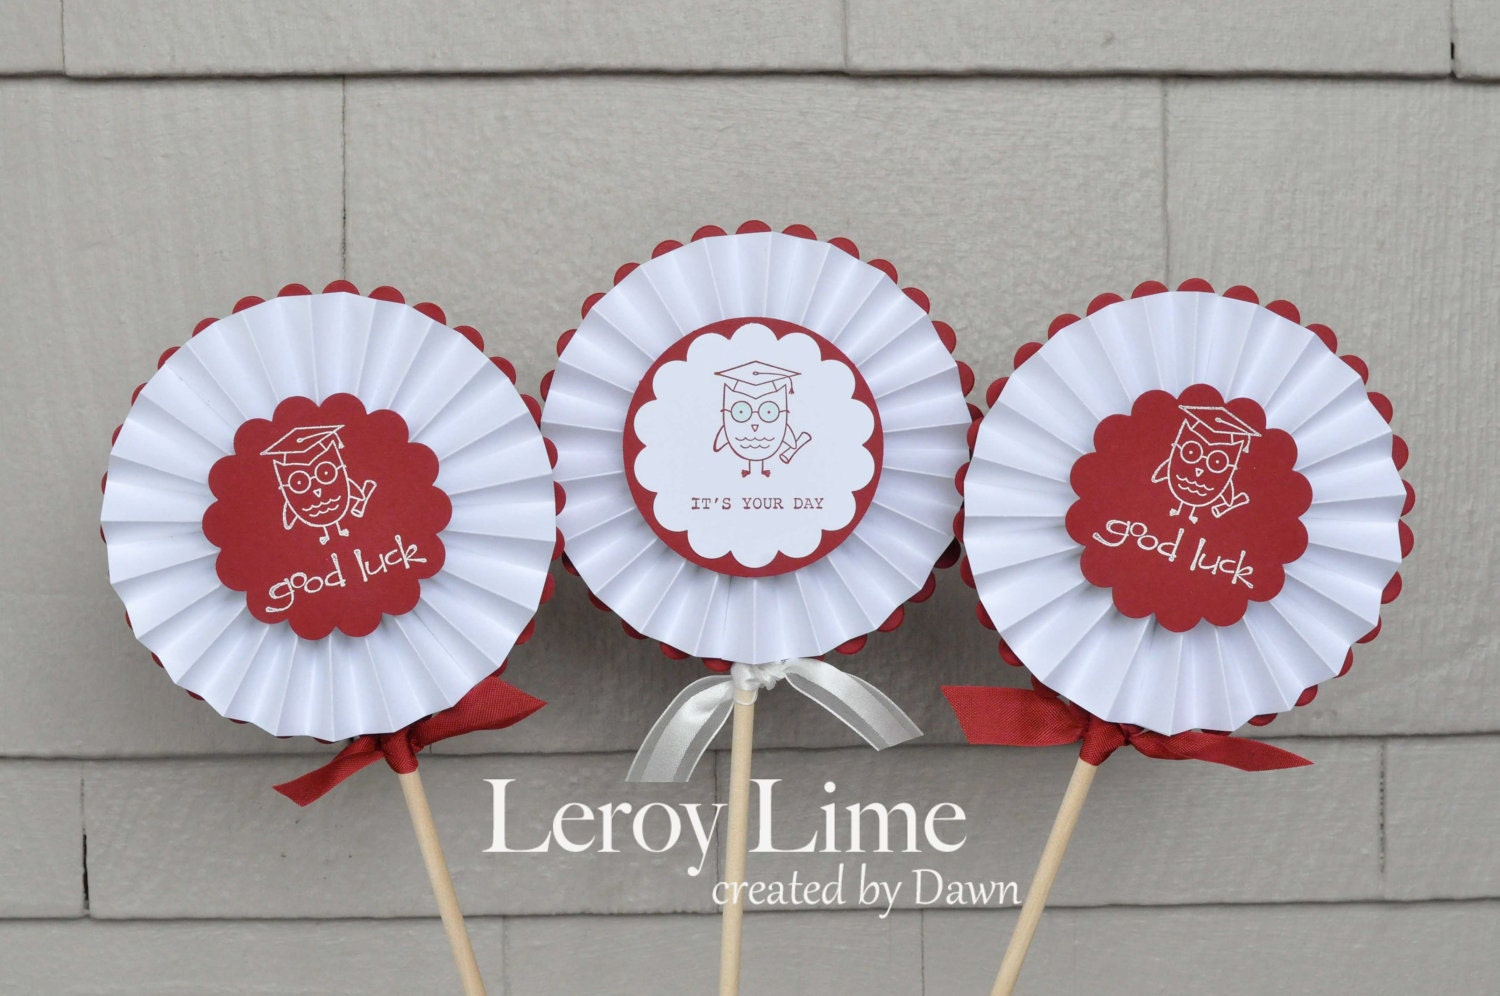 Homemade table decorations for graduation photograph gradu for Homemade table decorations